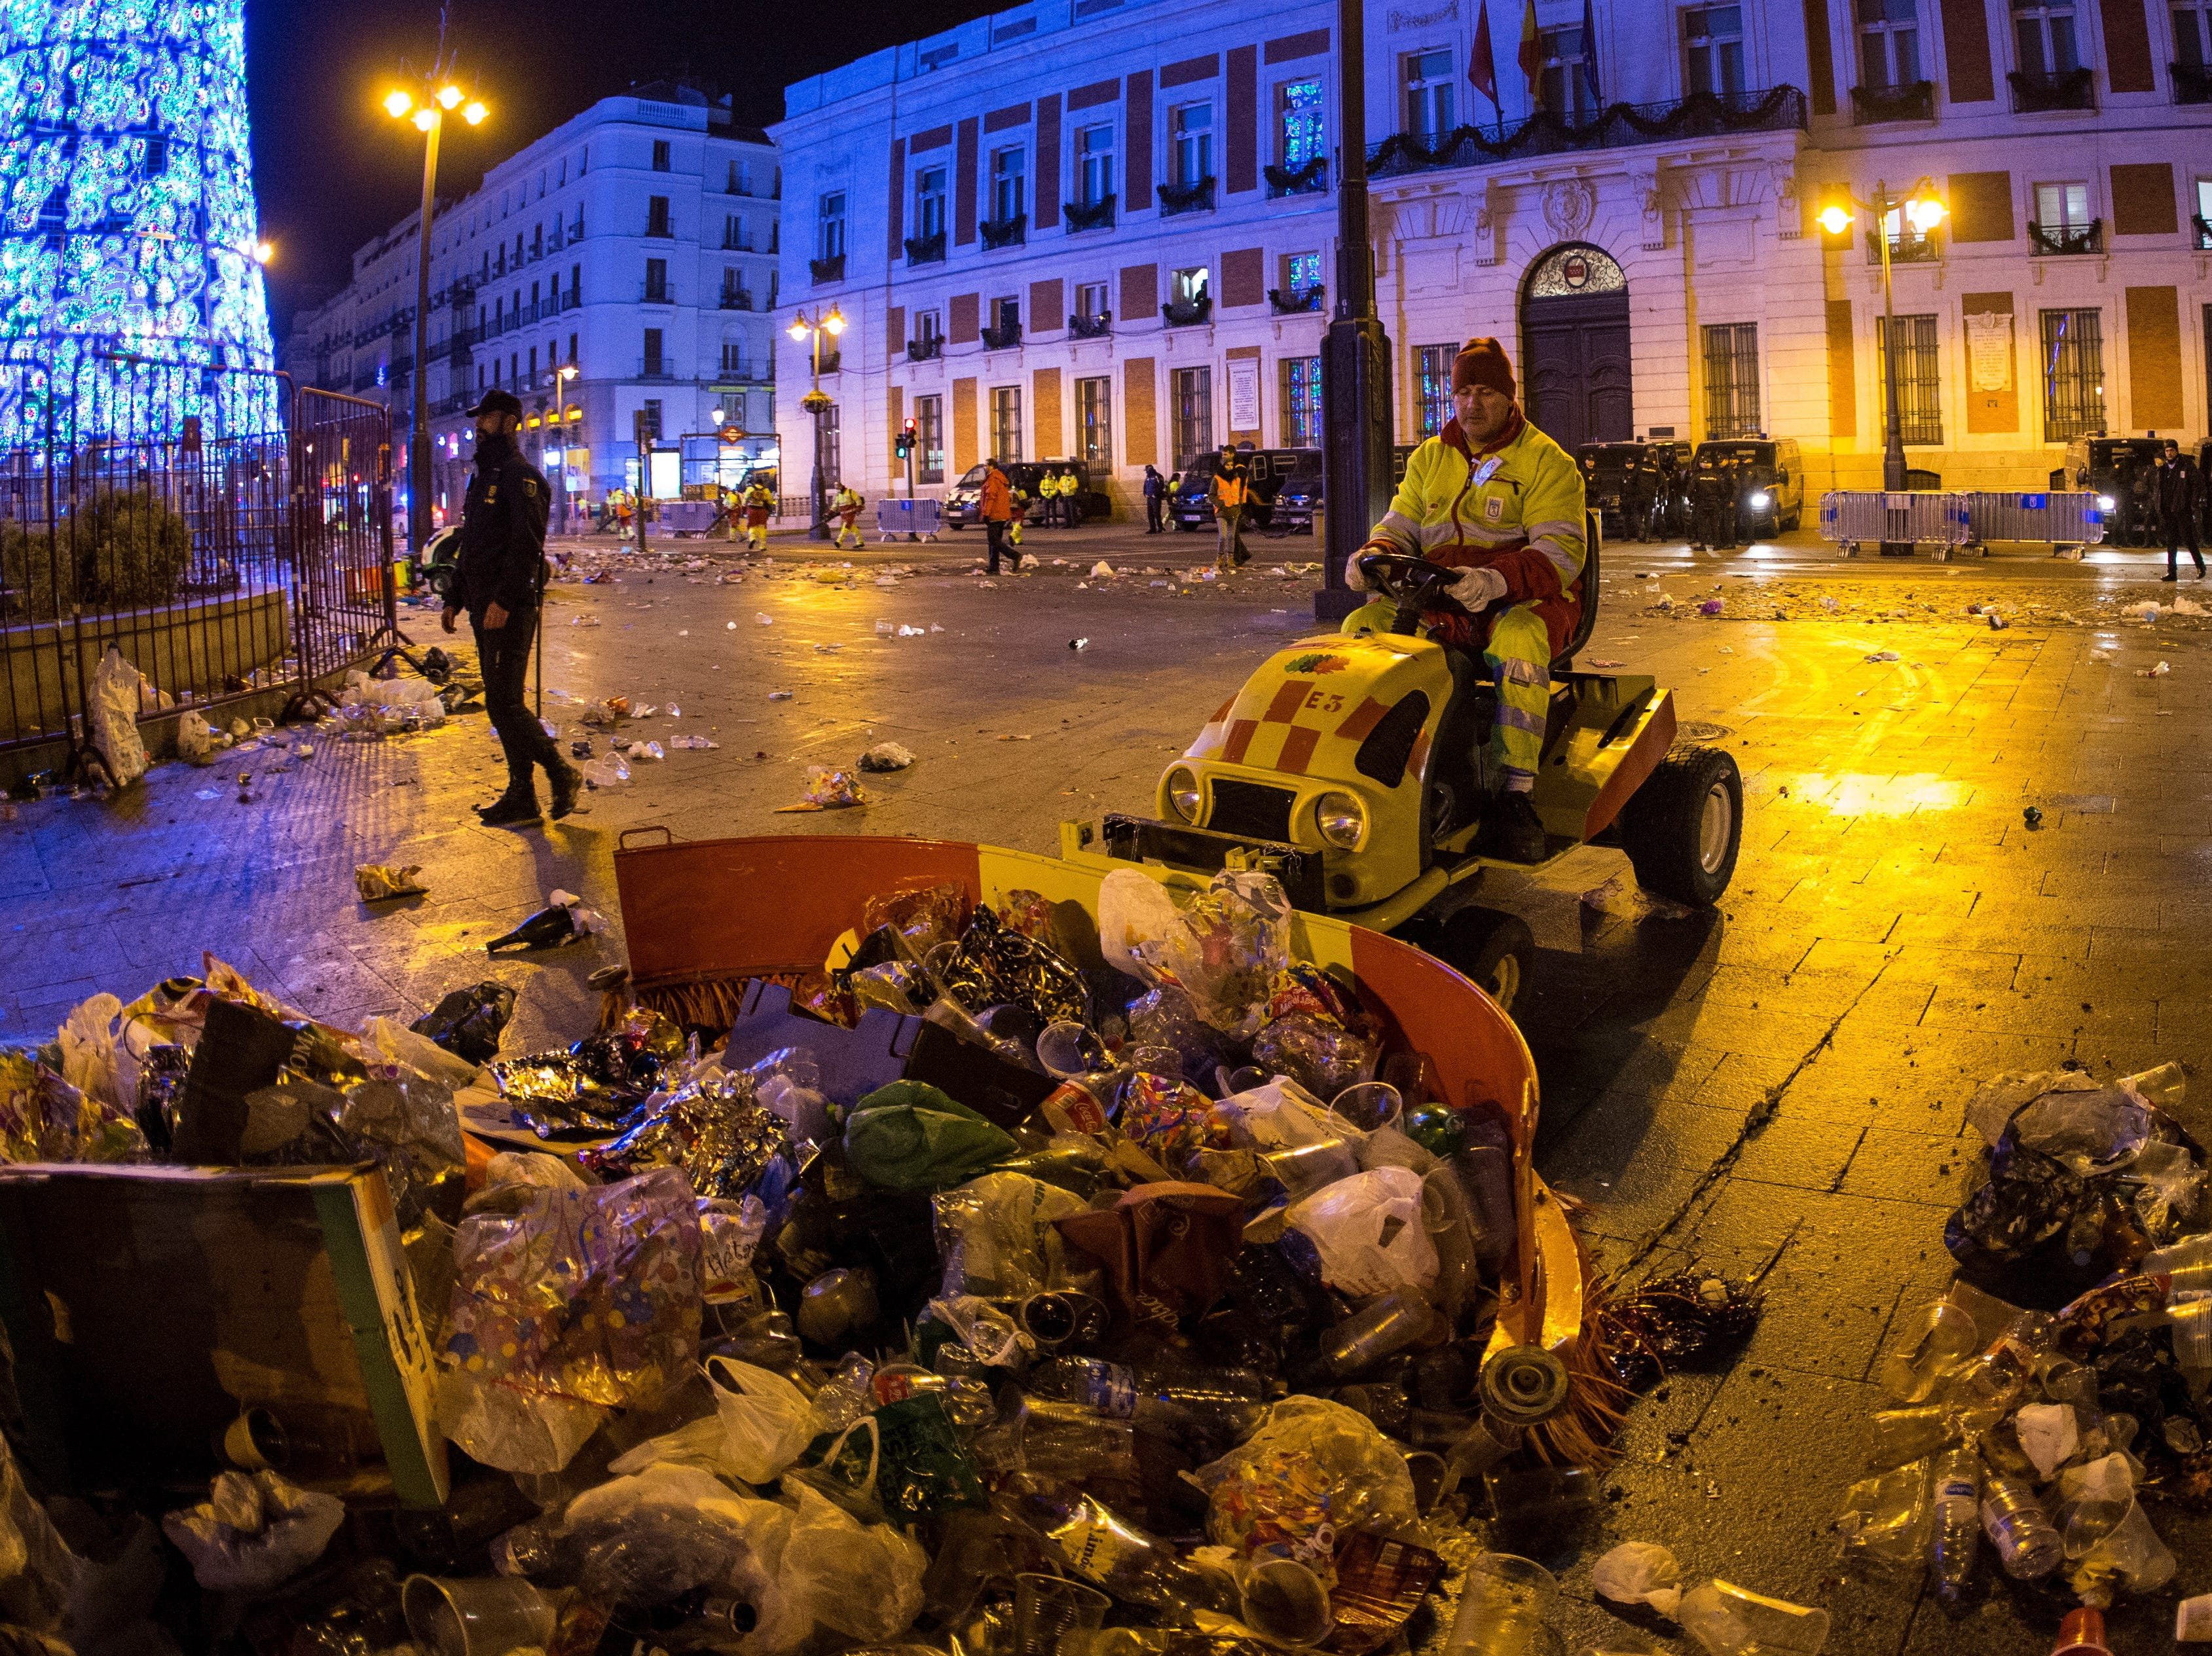 epa07256497 Municipal workers clean Puerta del Sol square after New Year's celebrations in downtown Madrid, Spain, early morning 01 January 2019. Several thousand people celebrated New Year at the square by partying and traditionally eating 12 grapes to the sound of the Puerta del Sol clock's strokes at midnight.  EPA-EFE/RODRIGO JIMENEZ ORG XMIT: GRAF3835